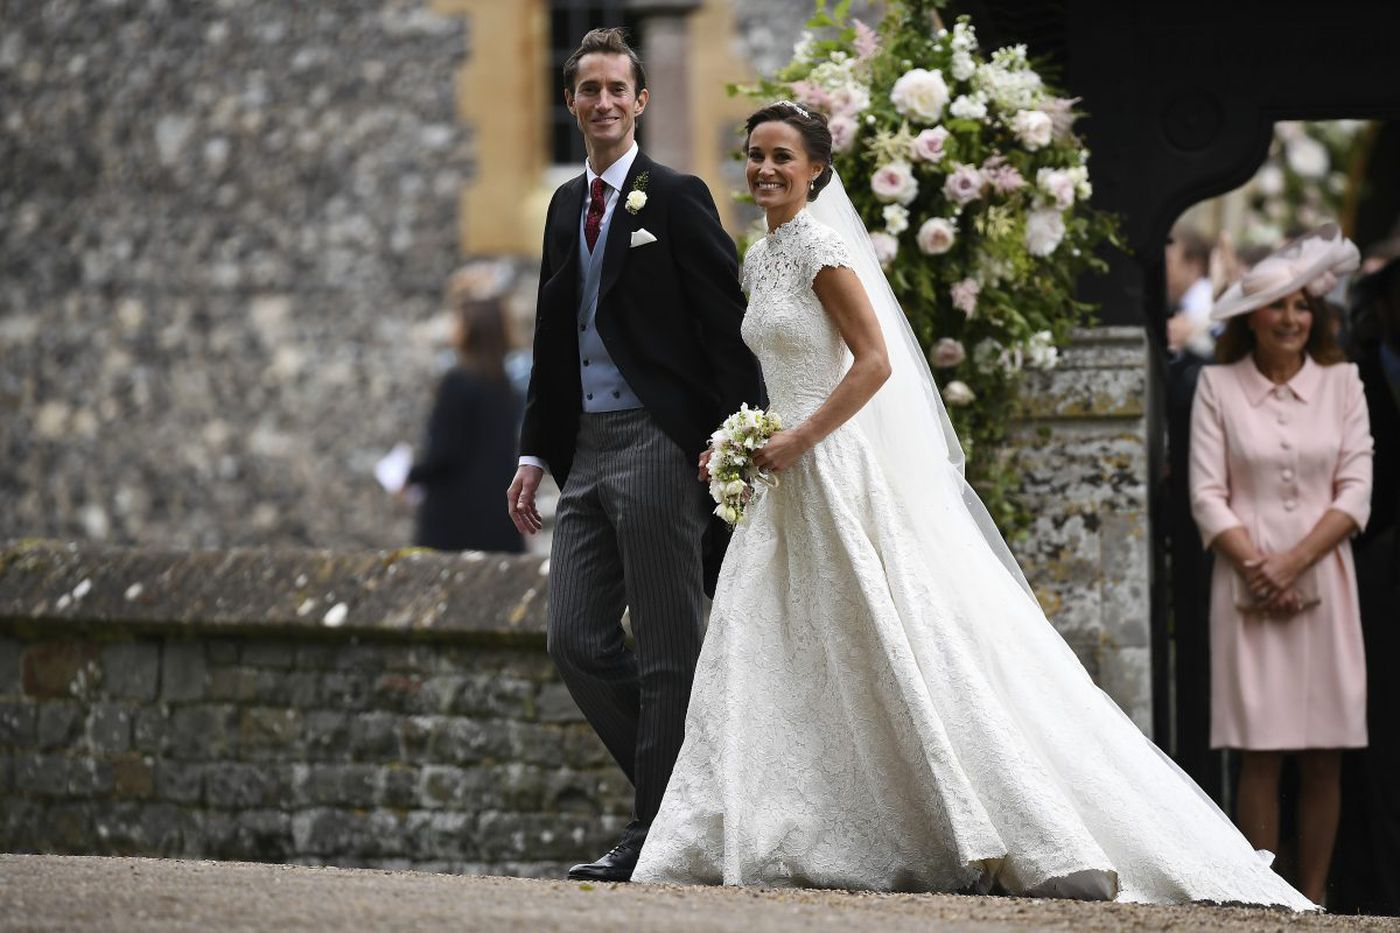 Pippa Middleton's wedding dress beautiful in its simplicity